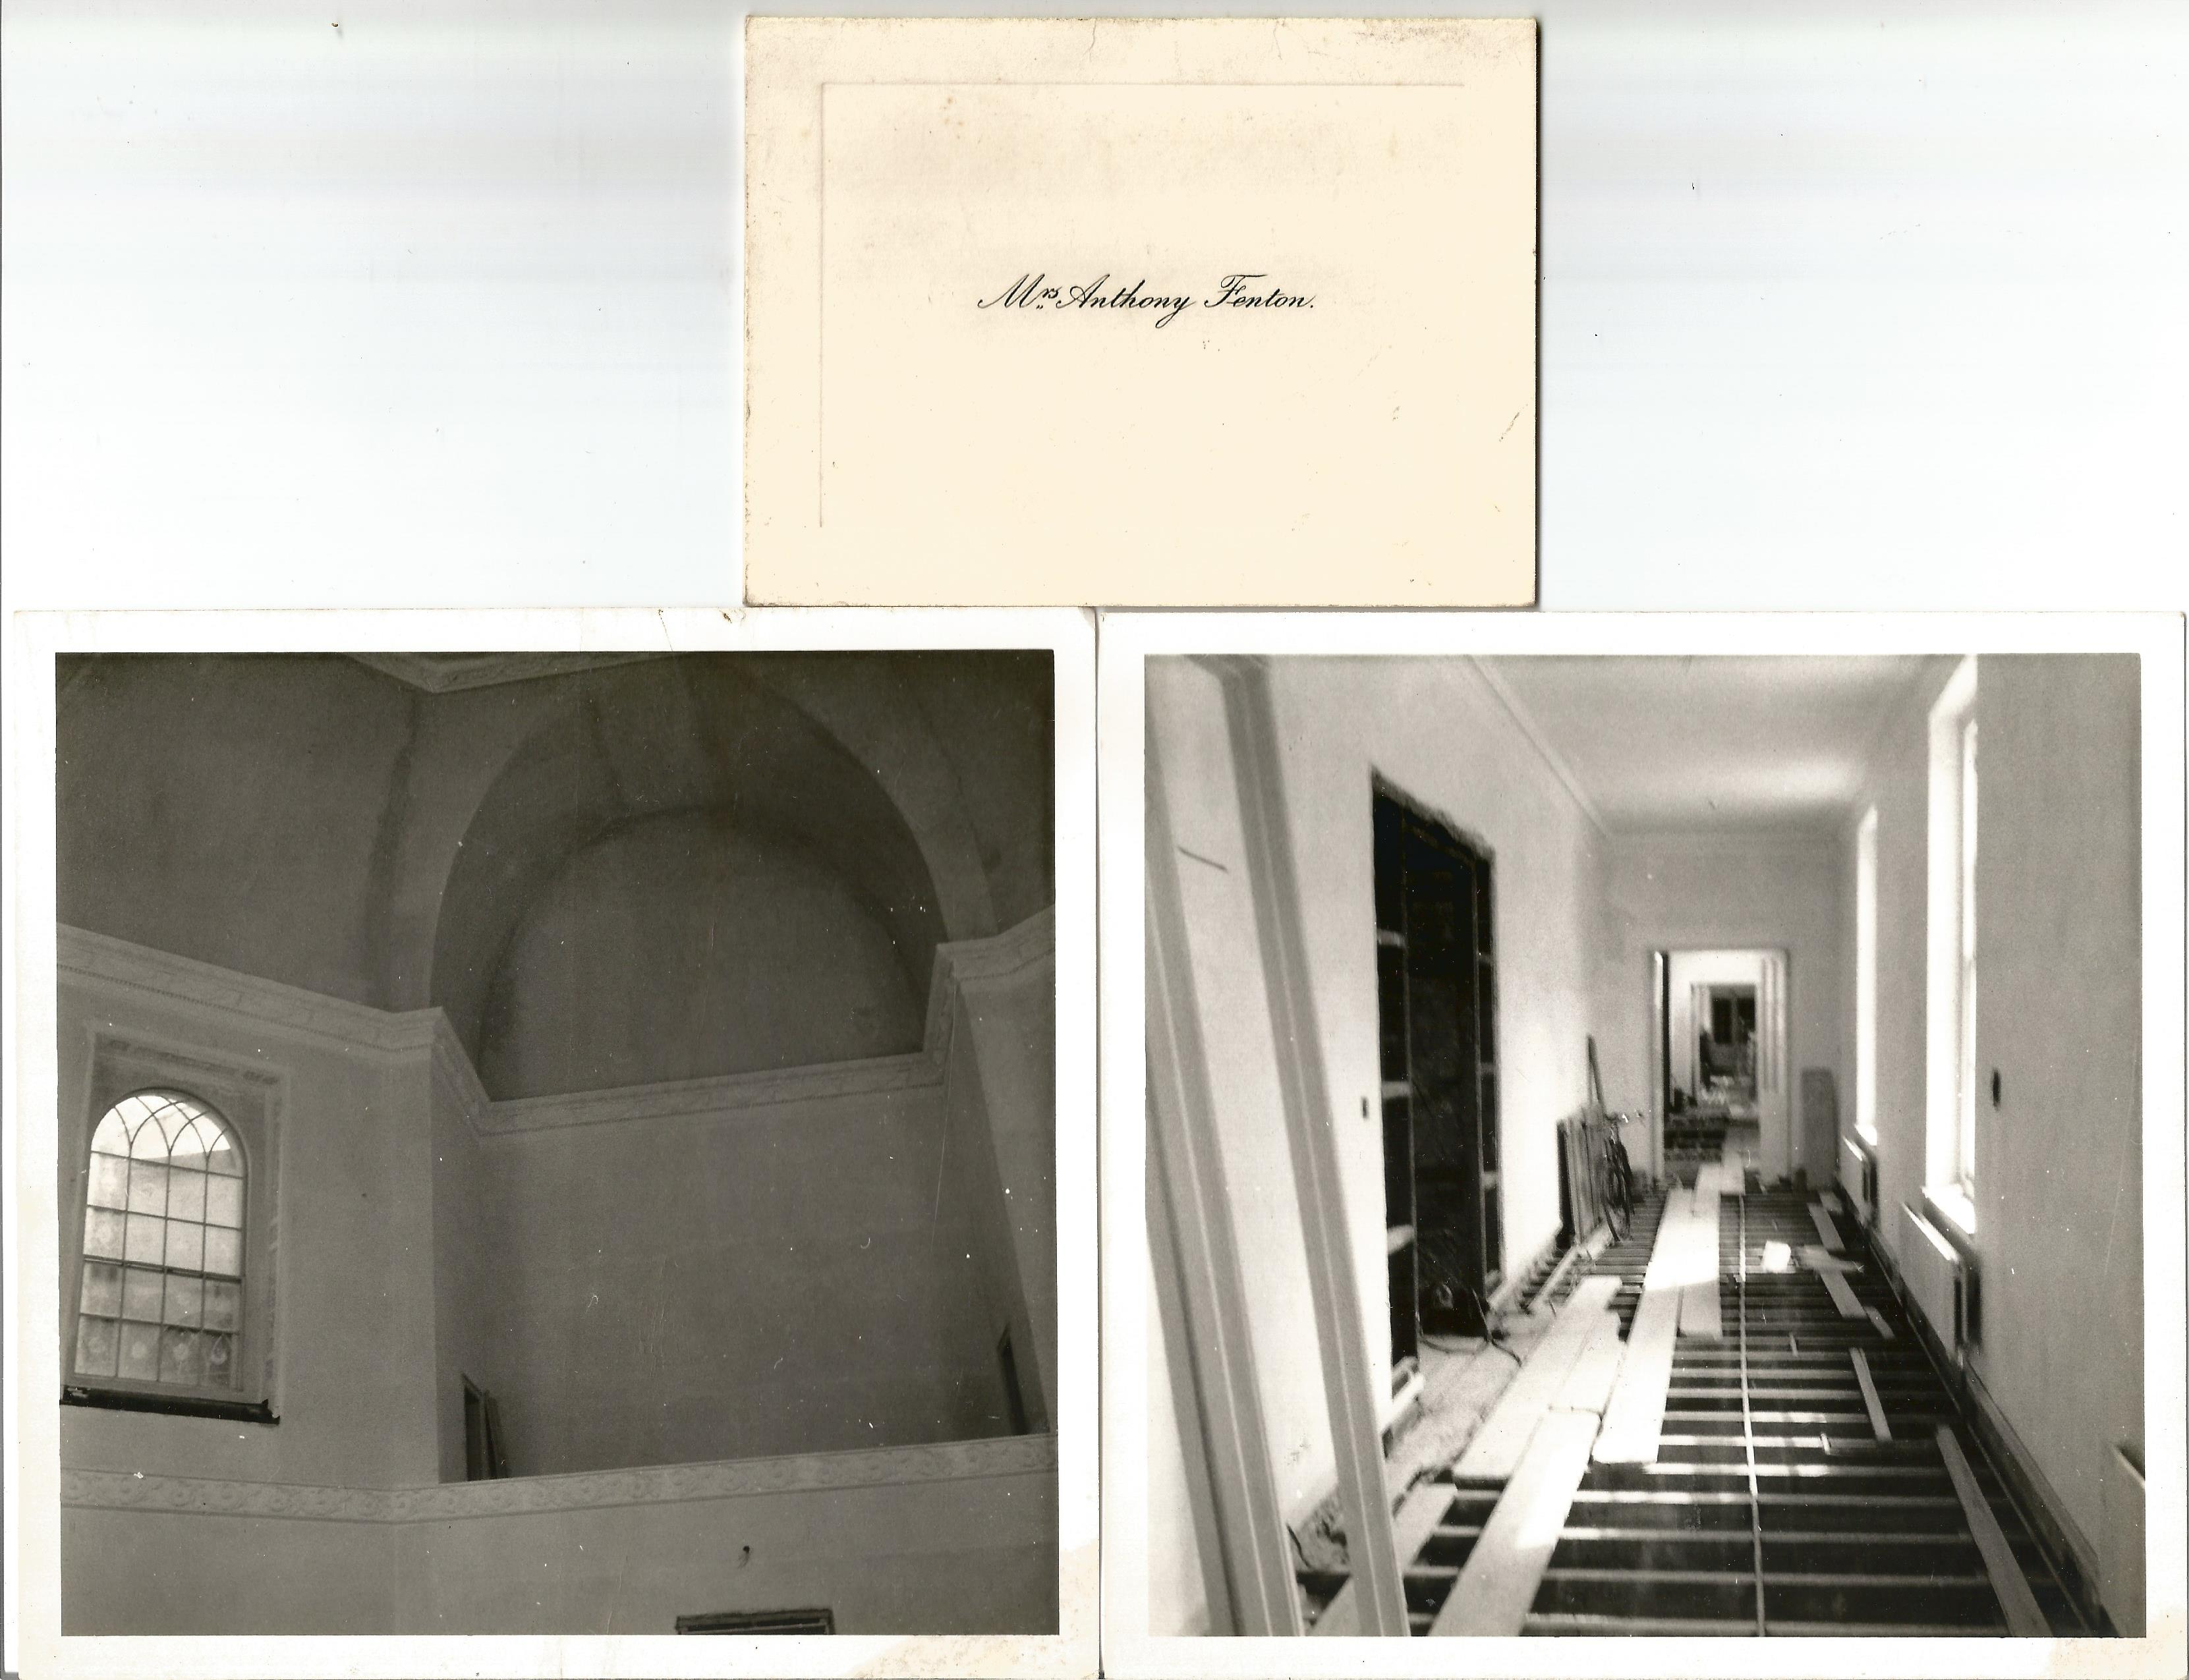 Architectural Drawings & Diagrams for Alterations at Bath Assembly Rooms in the 1960s Includes - Image 16 of 16